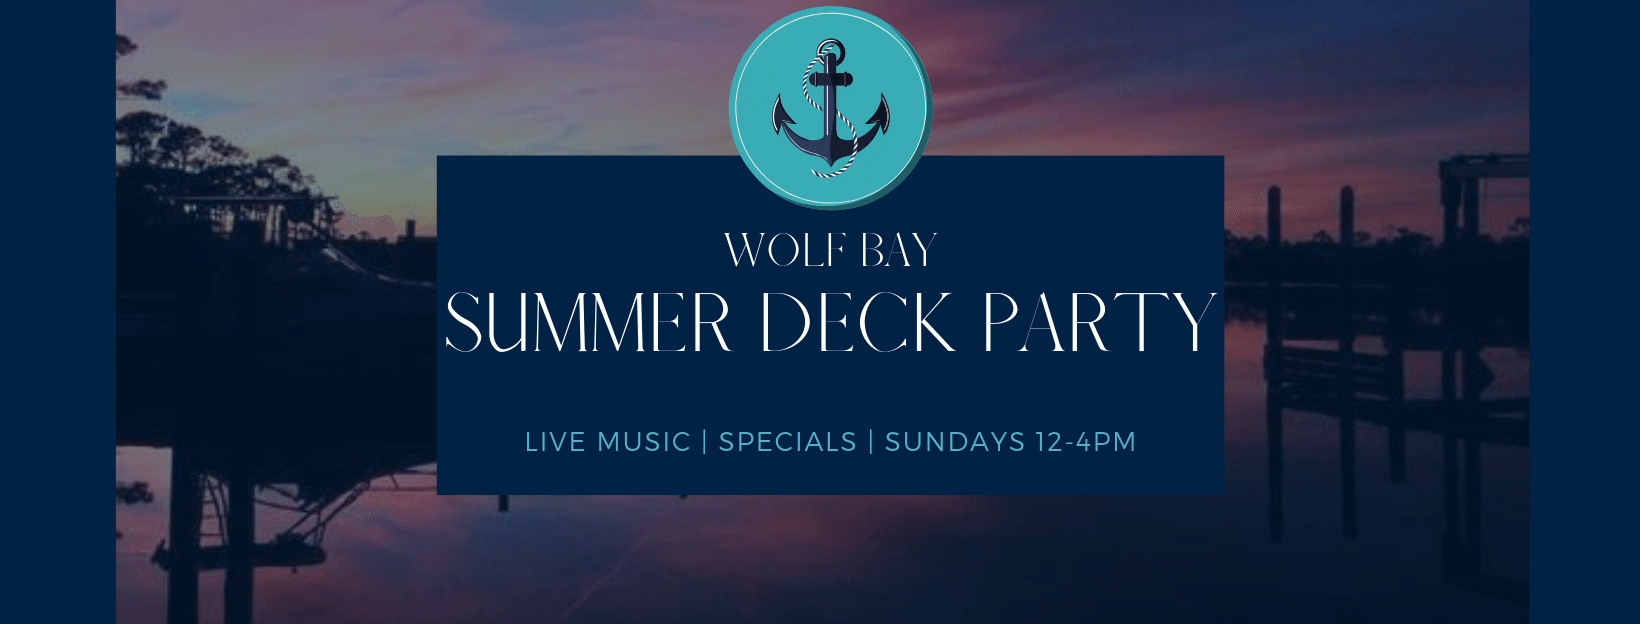 Summer Sunday Deck Parties at Wolf Bay Orange Beach